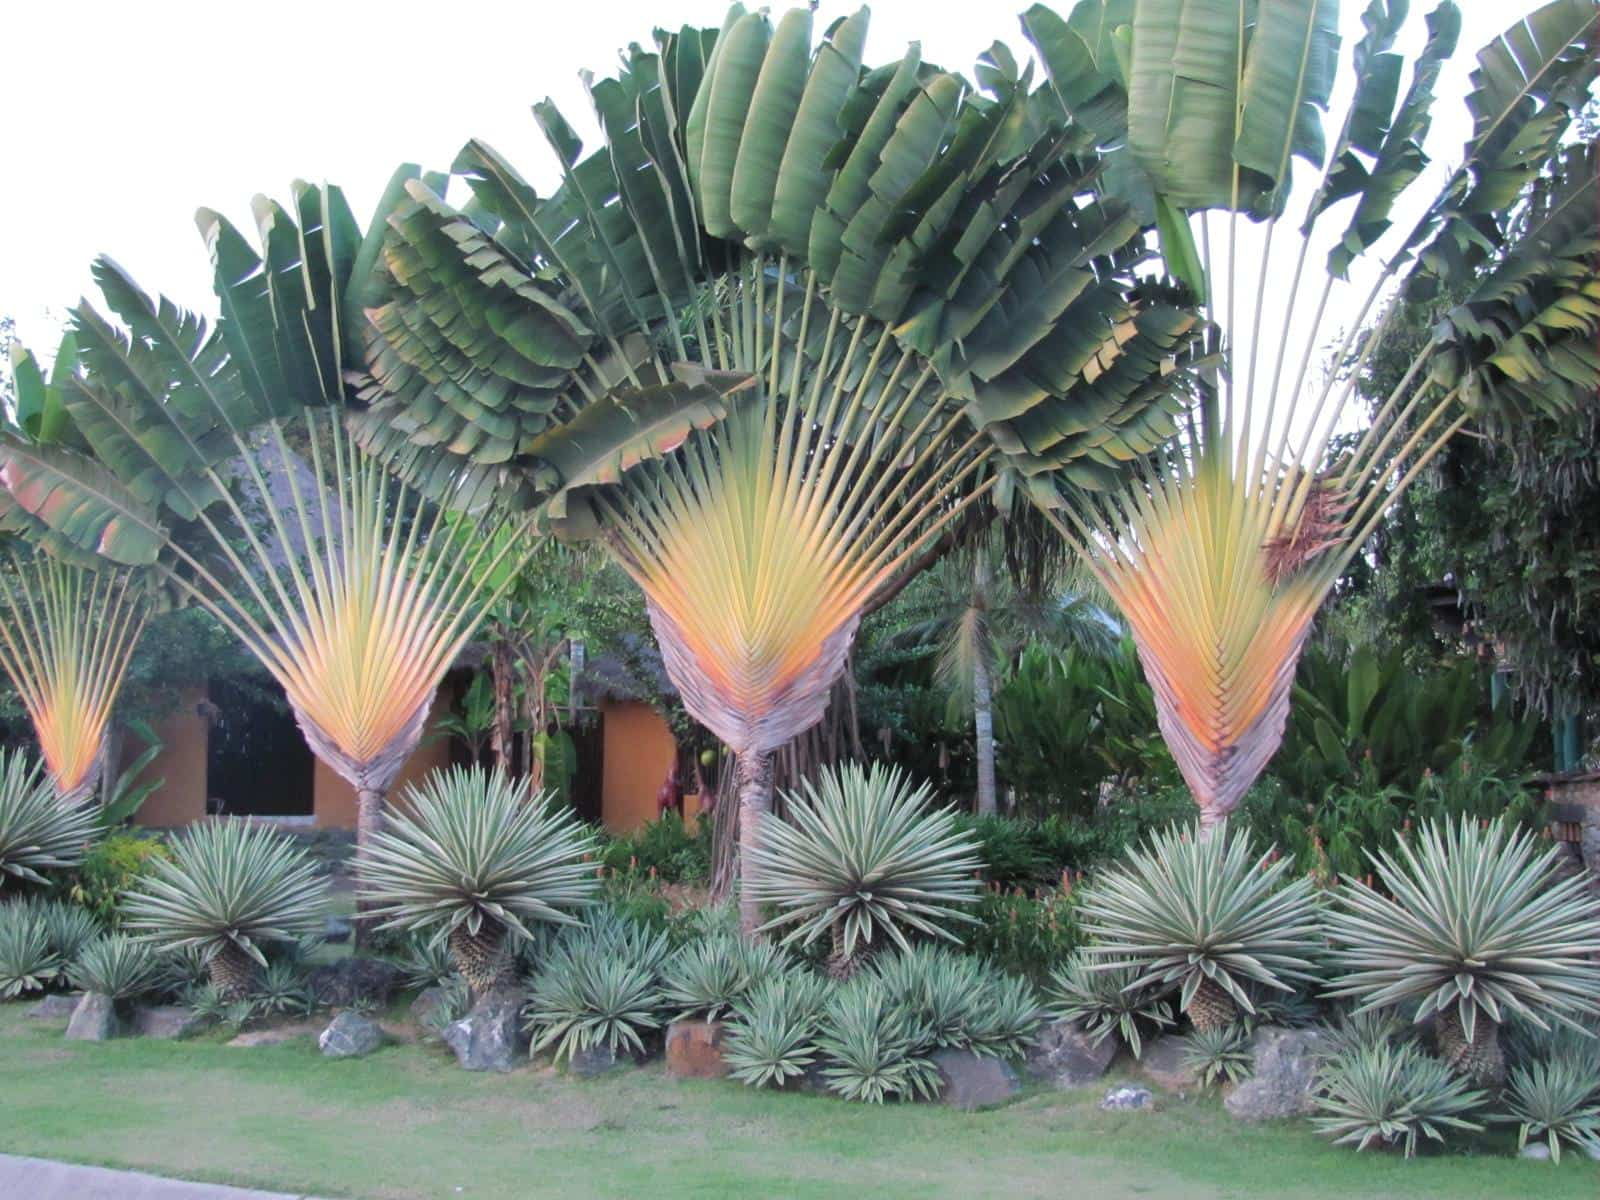 Traveller's Palm, one of the native palms of Madagascar.